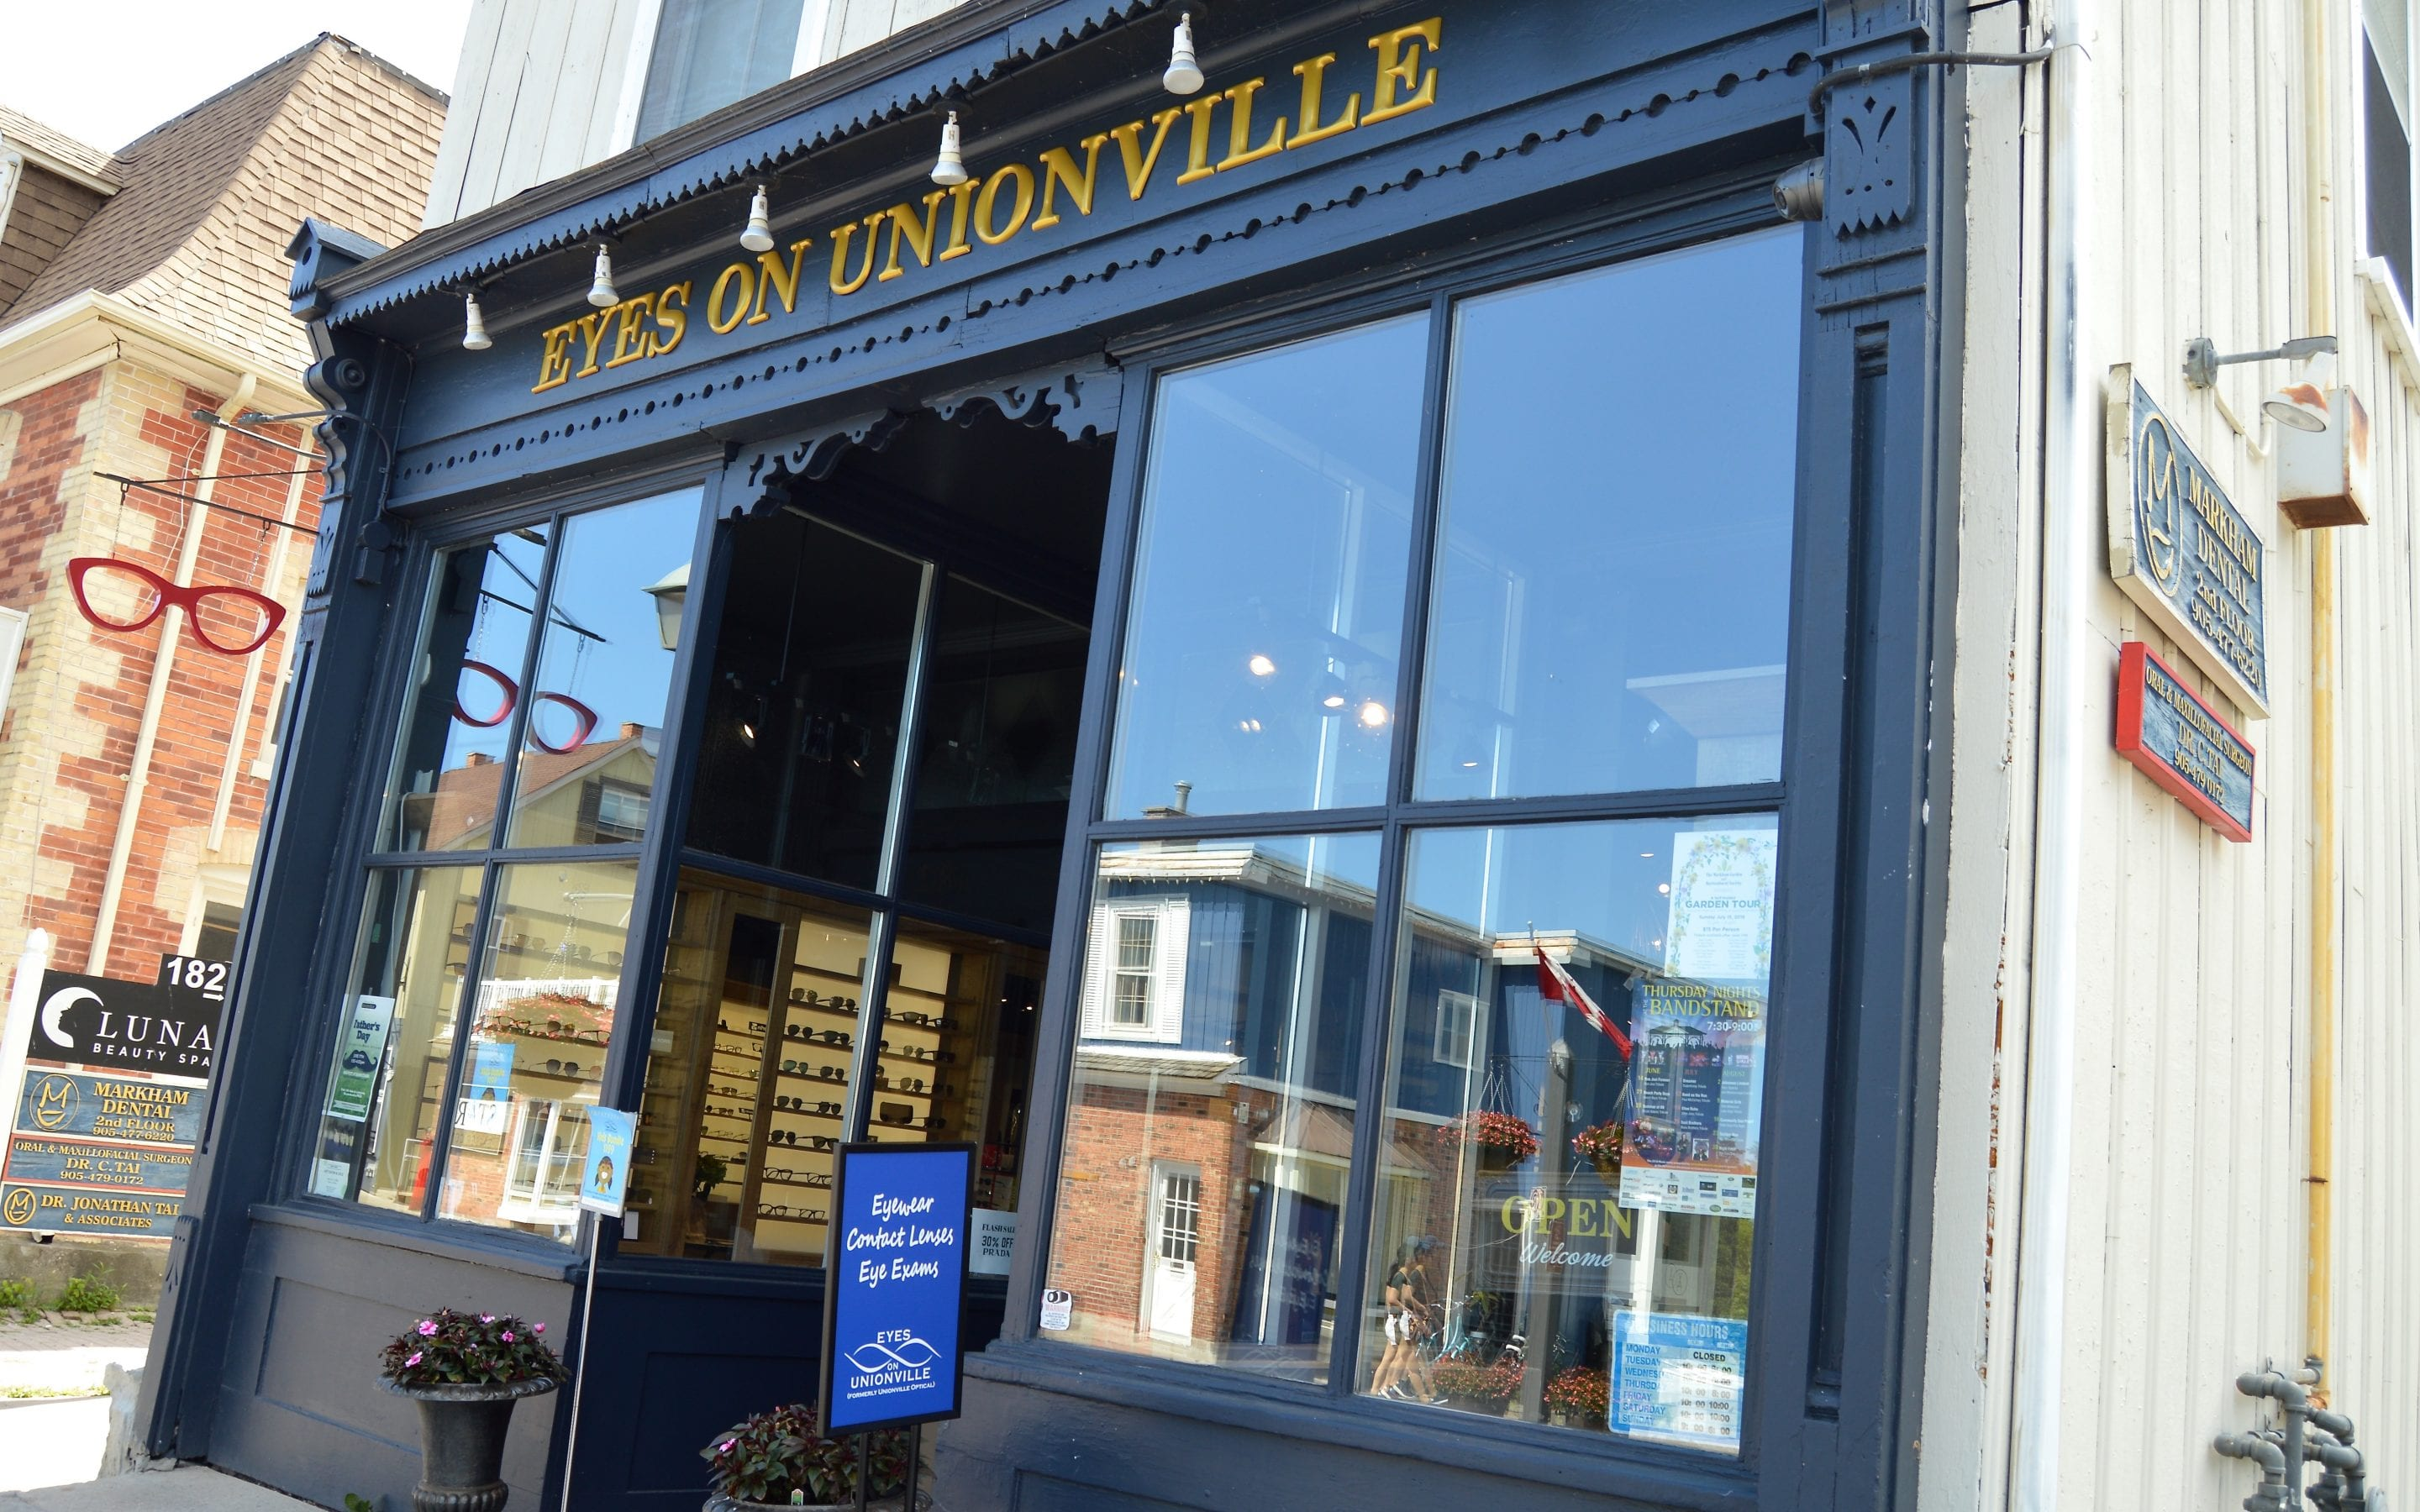 Eyes on Unionville